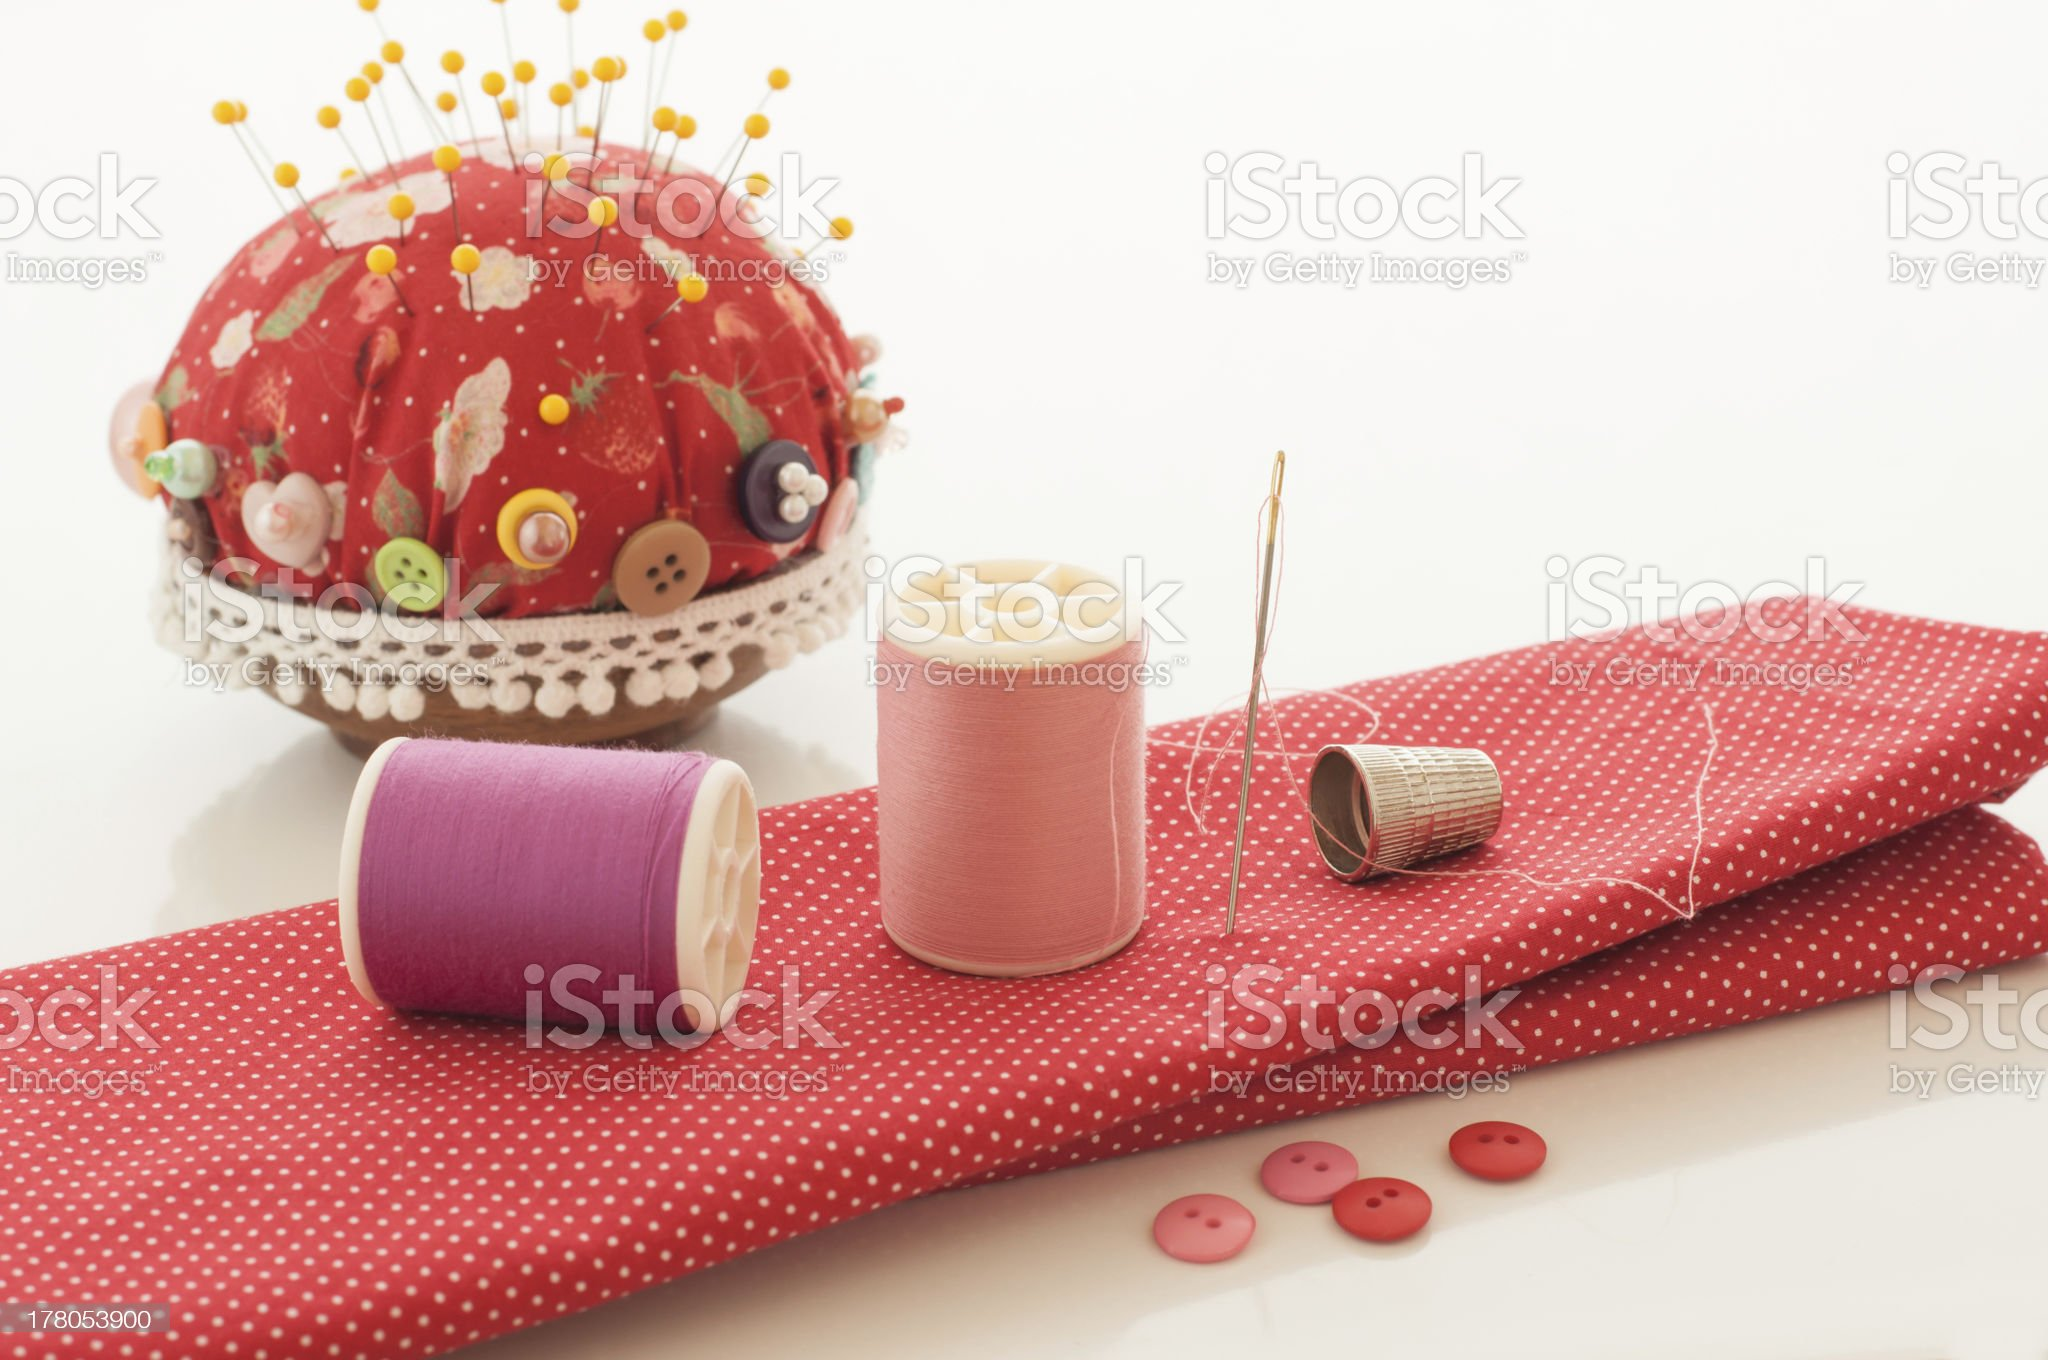 Red fabric, thread and other sewing tools. royalty-free stock photo